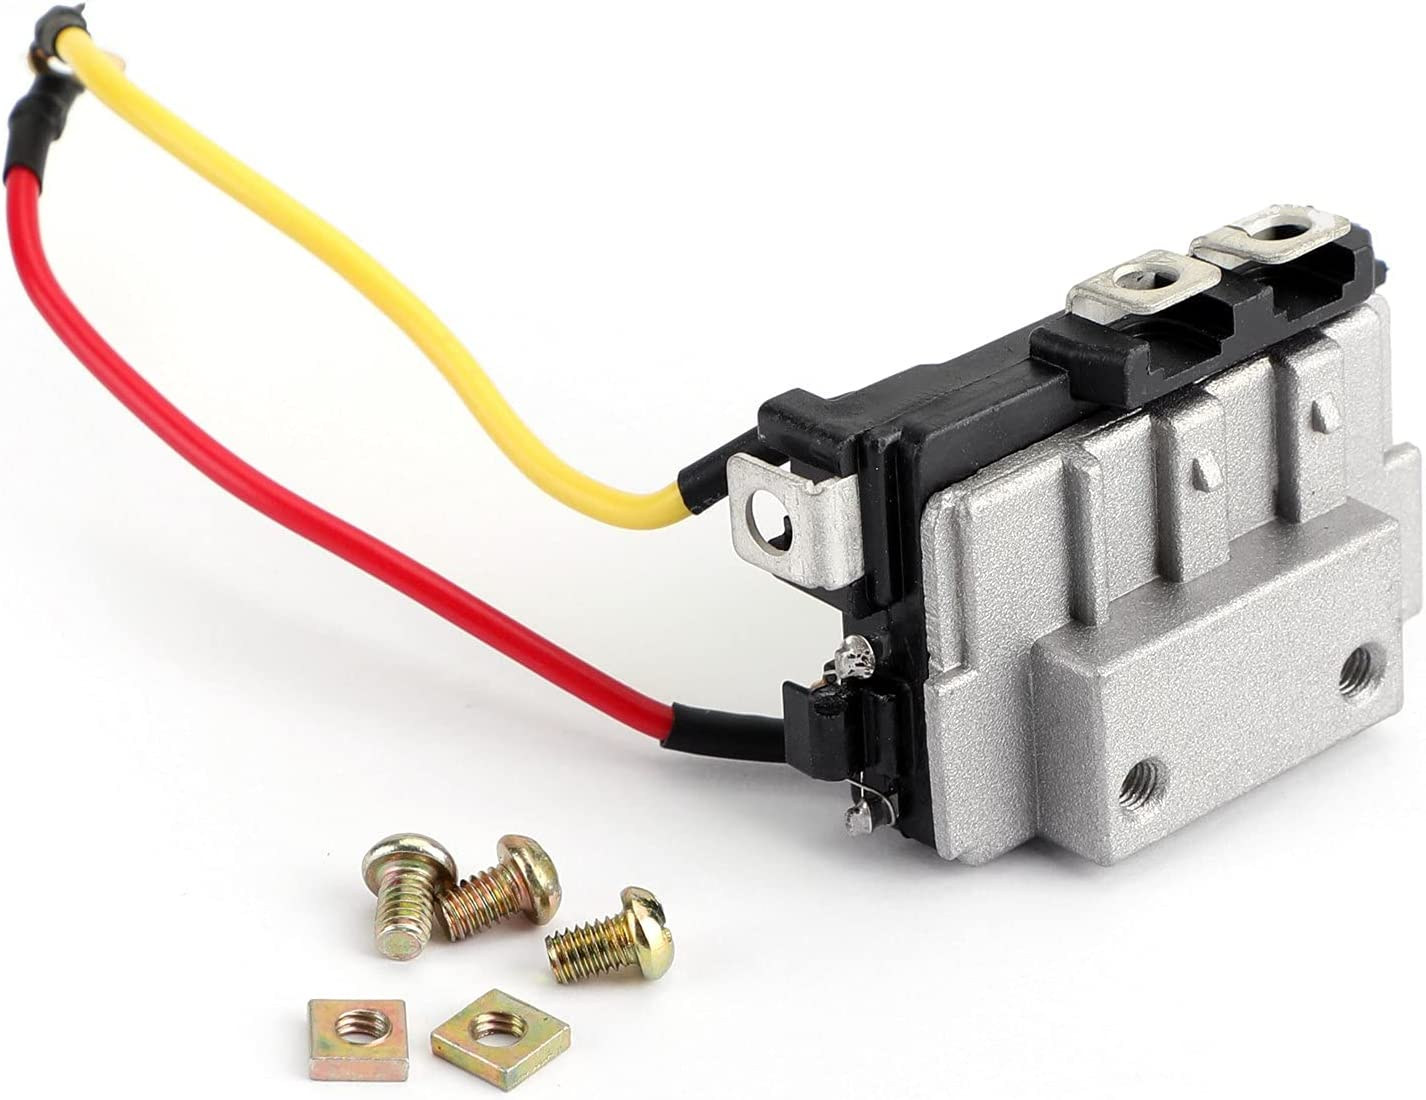 Topteng Car Ignition Control Max 63% OFF Module LX-597B for Replacement fits Sales of SALE items from new works